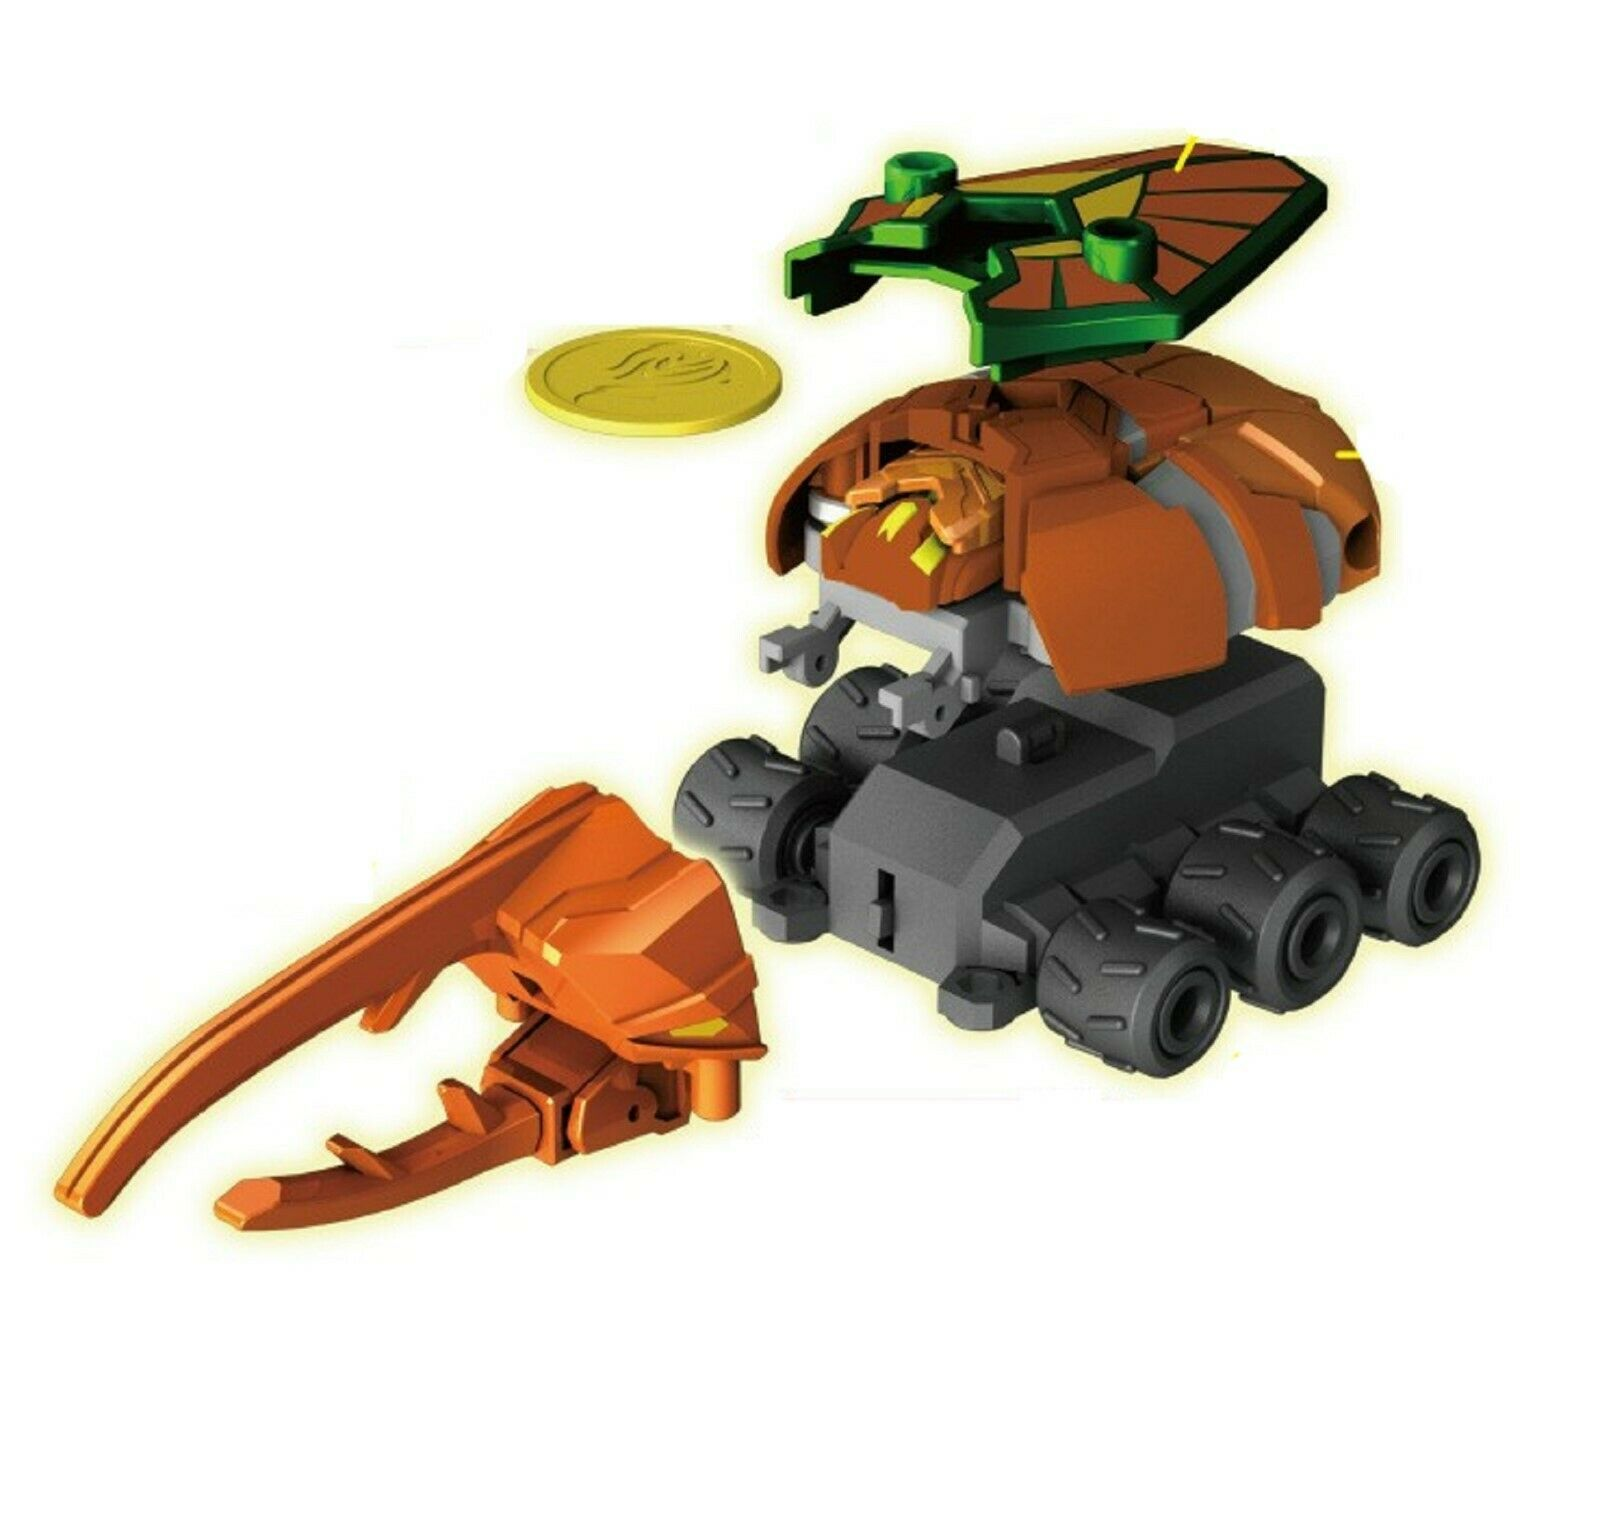 Bugsbot Ignition Basic B-03 Battle Hercules Action Figure Battling Bug Toy